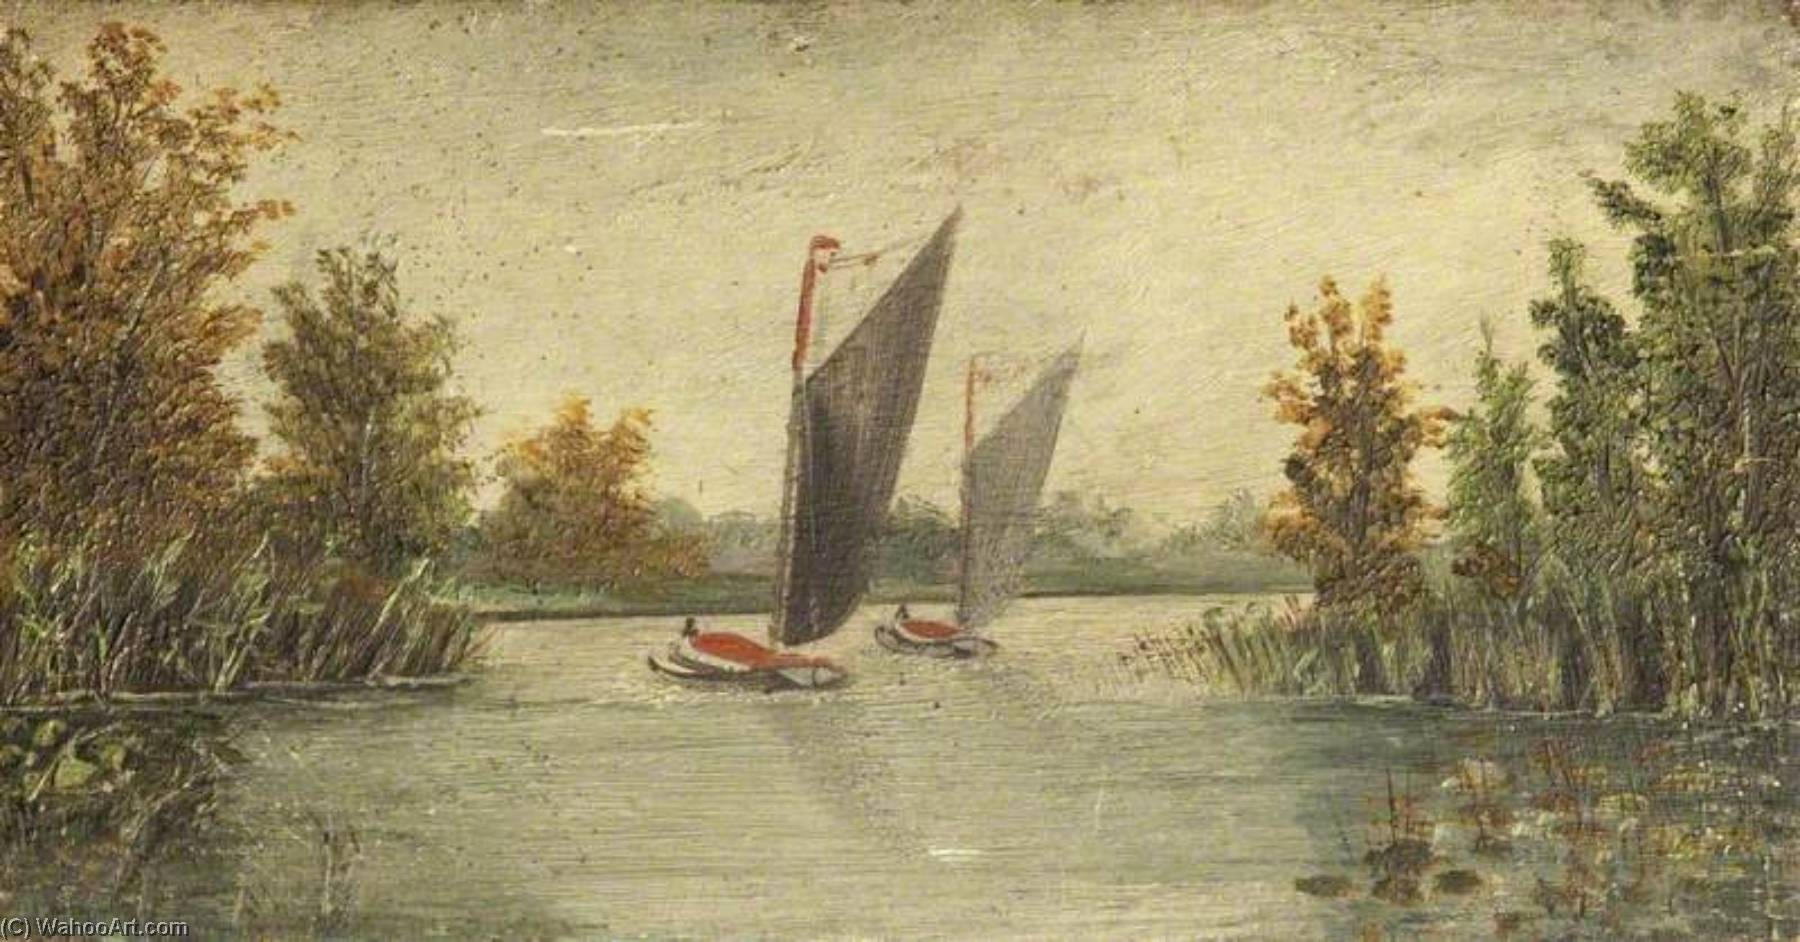 Yachts Sailing on a River by Charles Paget Wade (1883-1956, United Kingdom) | WahooArt.com